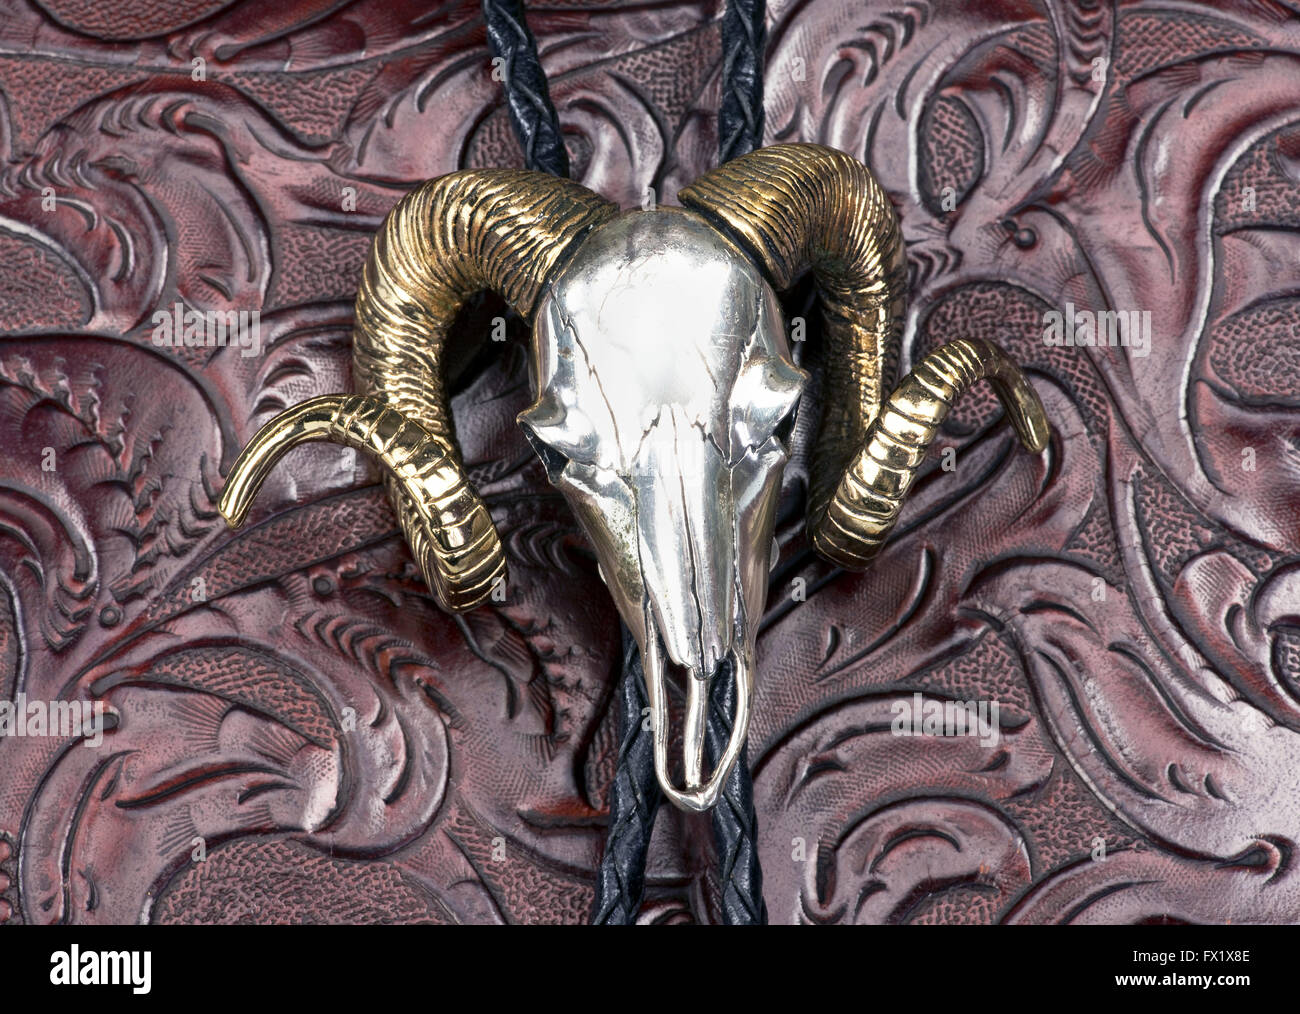 Sterling silver Indian ram head bolo tie. - Stock Image